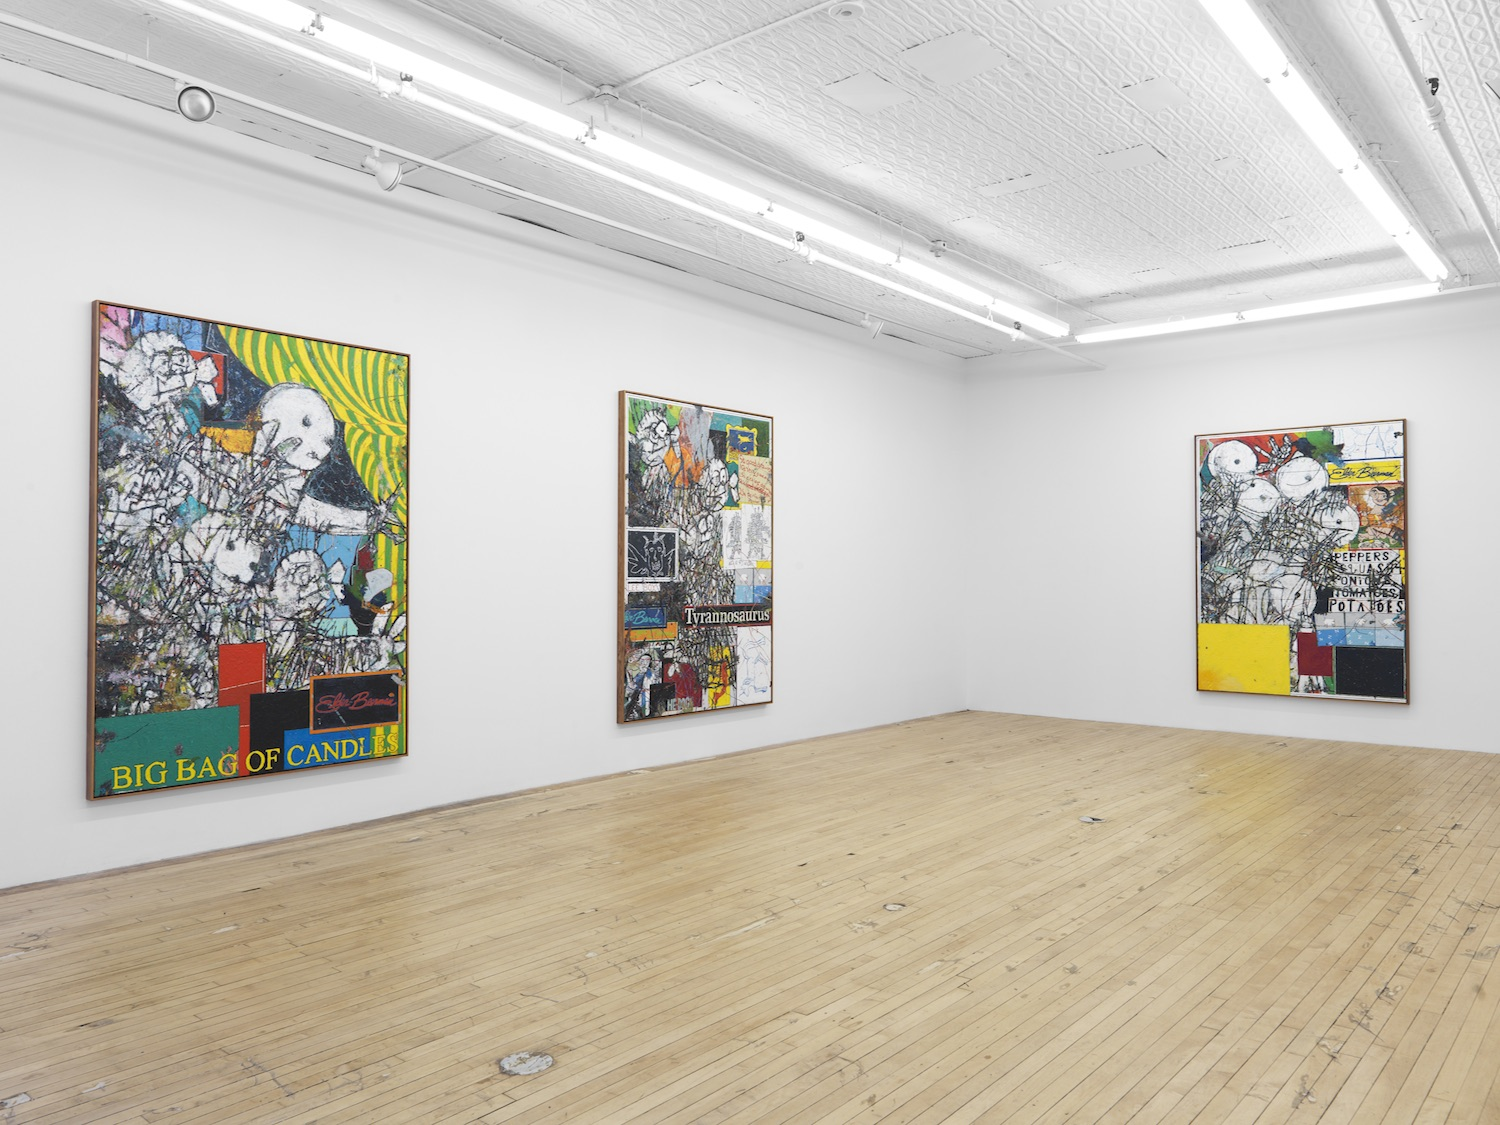 Installation view, Hills & Dales, Zachary Armstrong at Feuer/Mesler, New York, 2016. Courtesy of Feuer/Mesler.